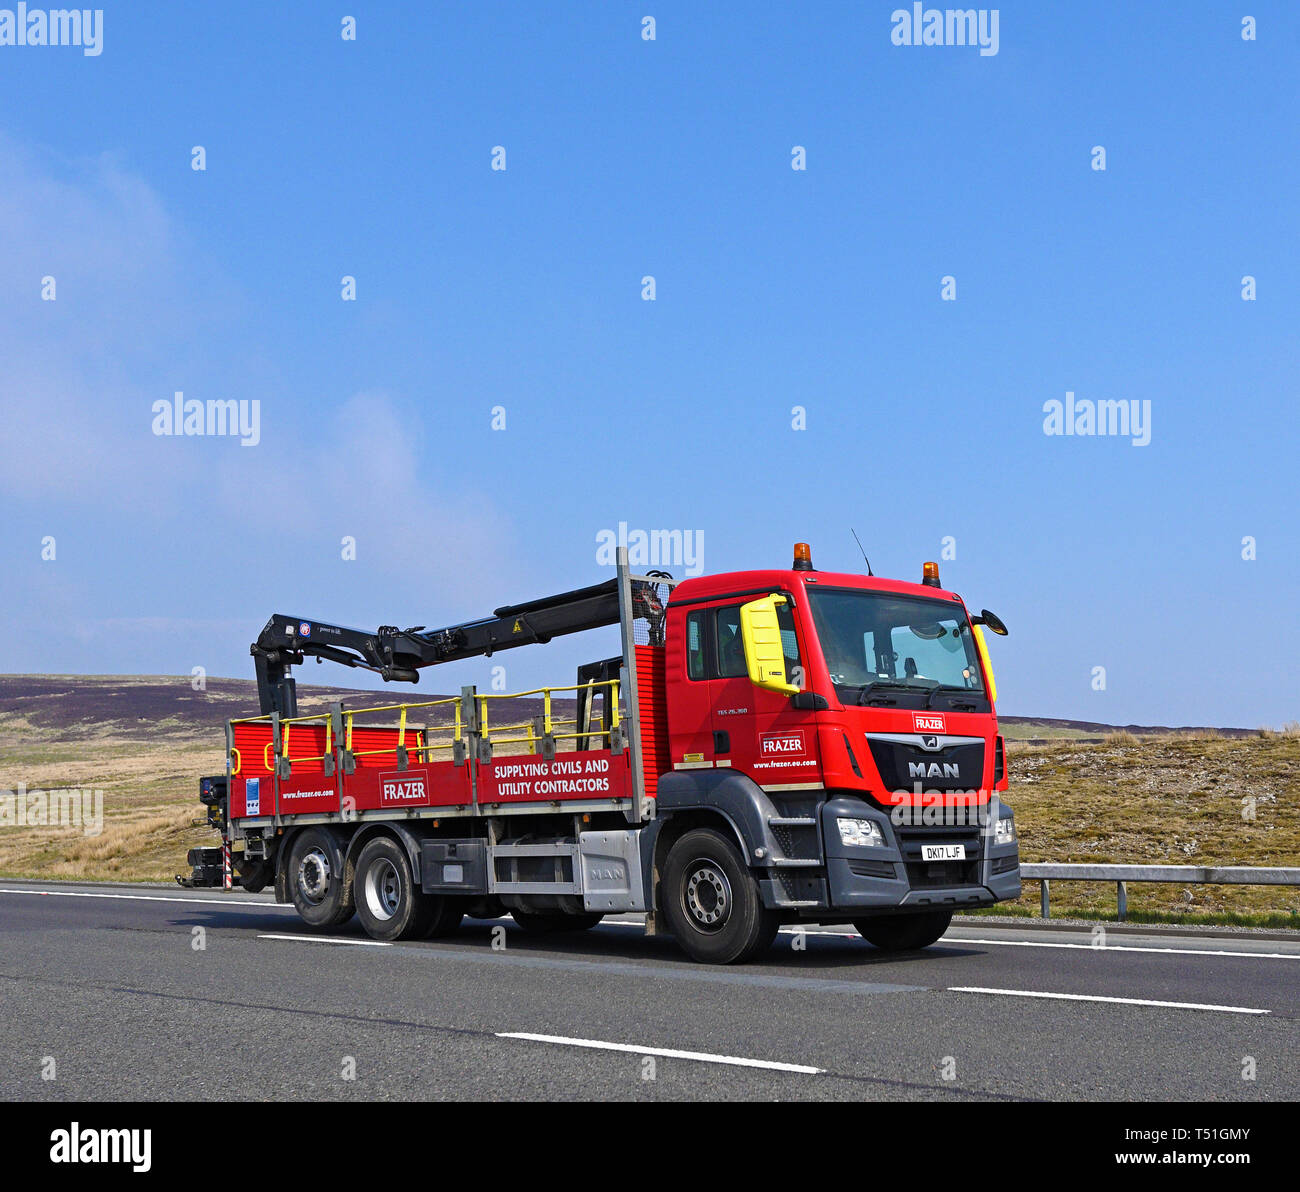 frazer-building-materials-hgv-m6-motorway-southbound-shap-cumbria-england-united-kingdom-europe-T51GMY.jpg